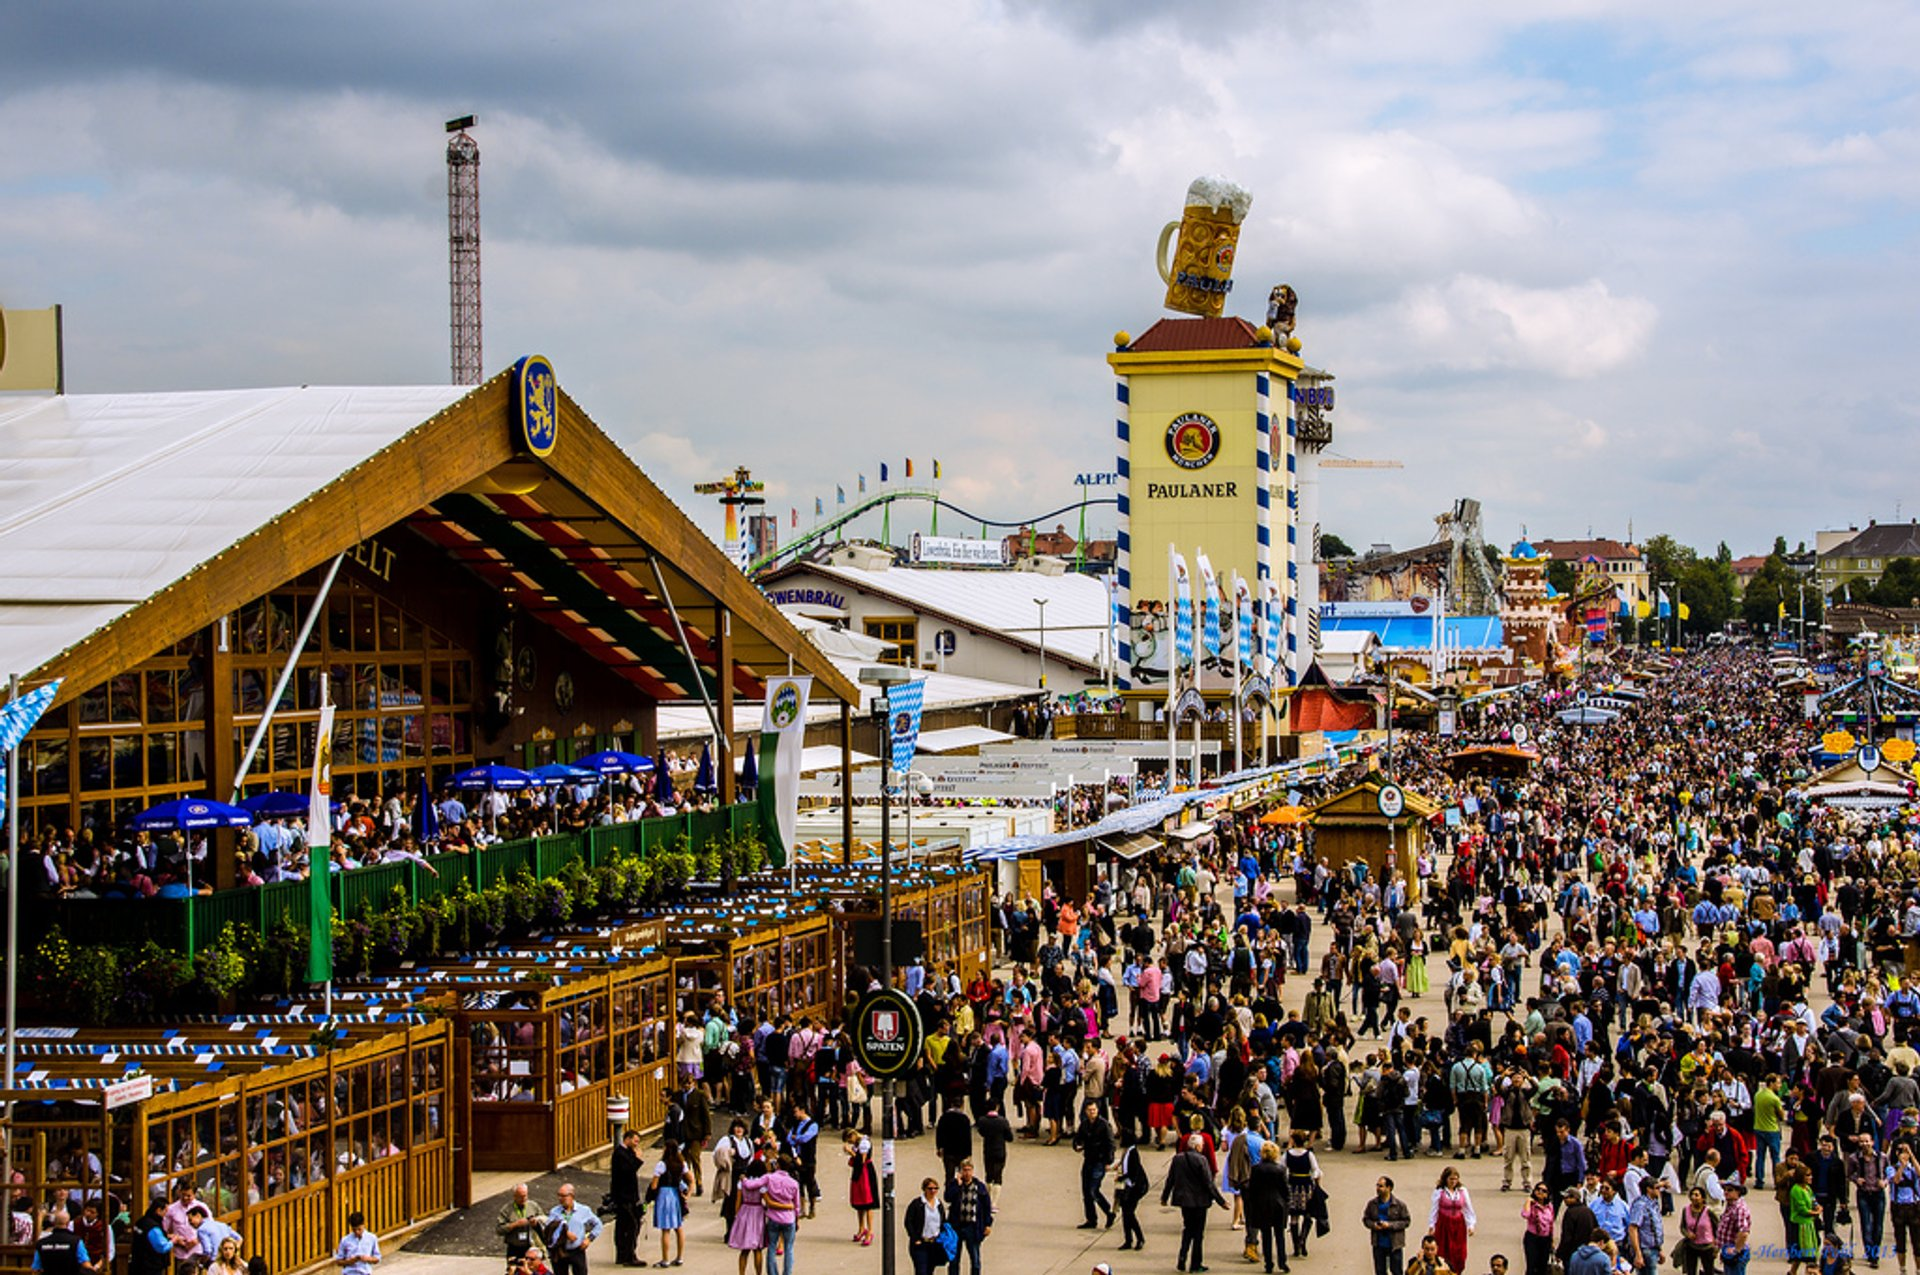 Oktoberfest in Munich 2020 - Best Time